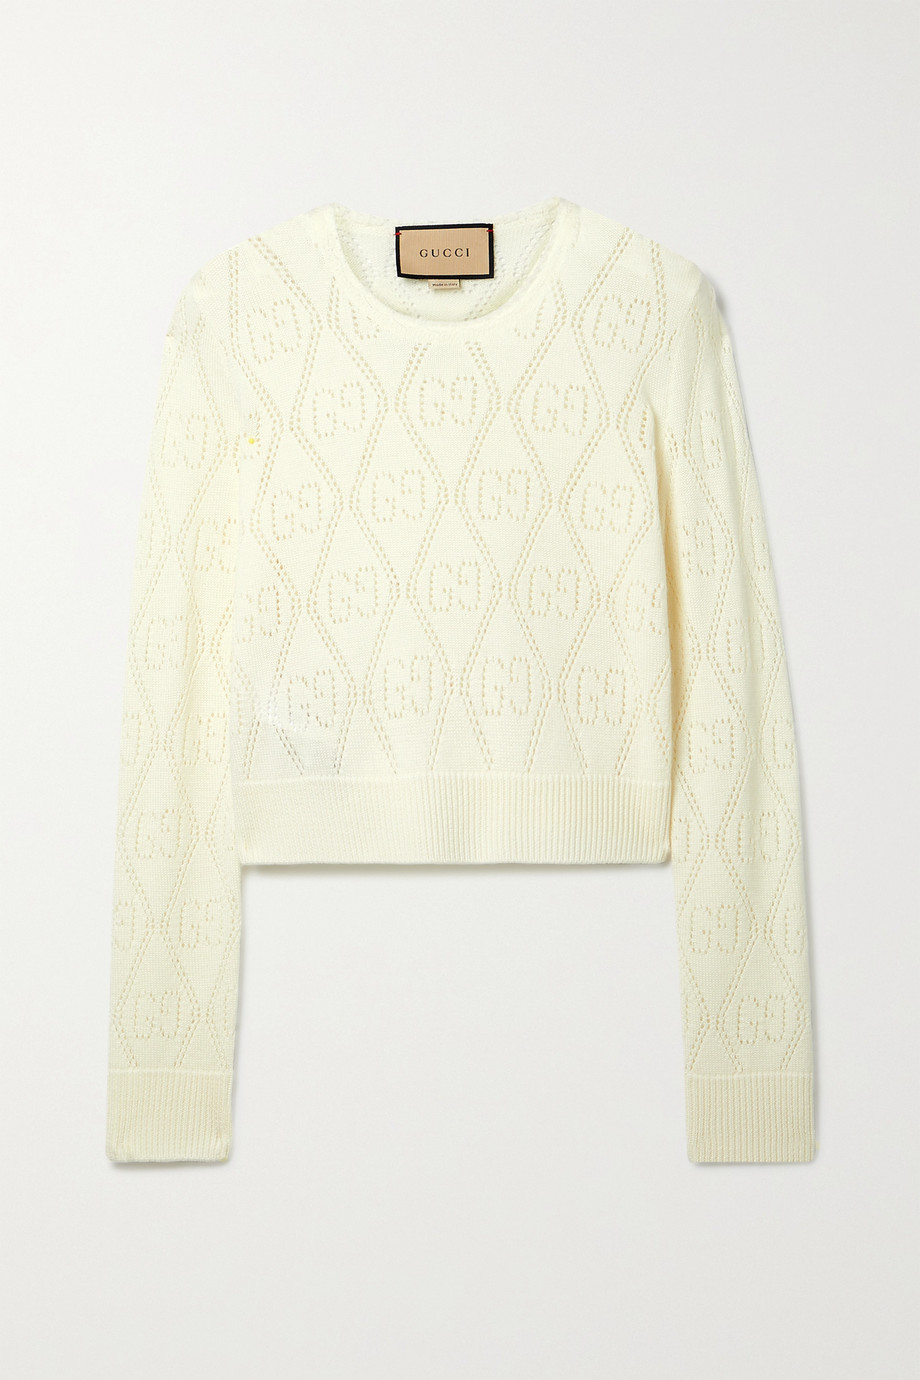 Gucci Cropped pointelle-knit wool sweater